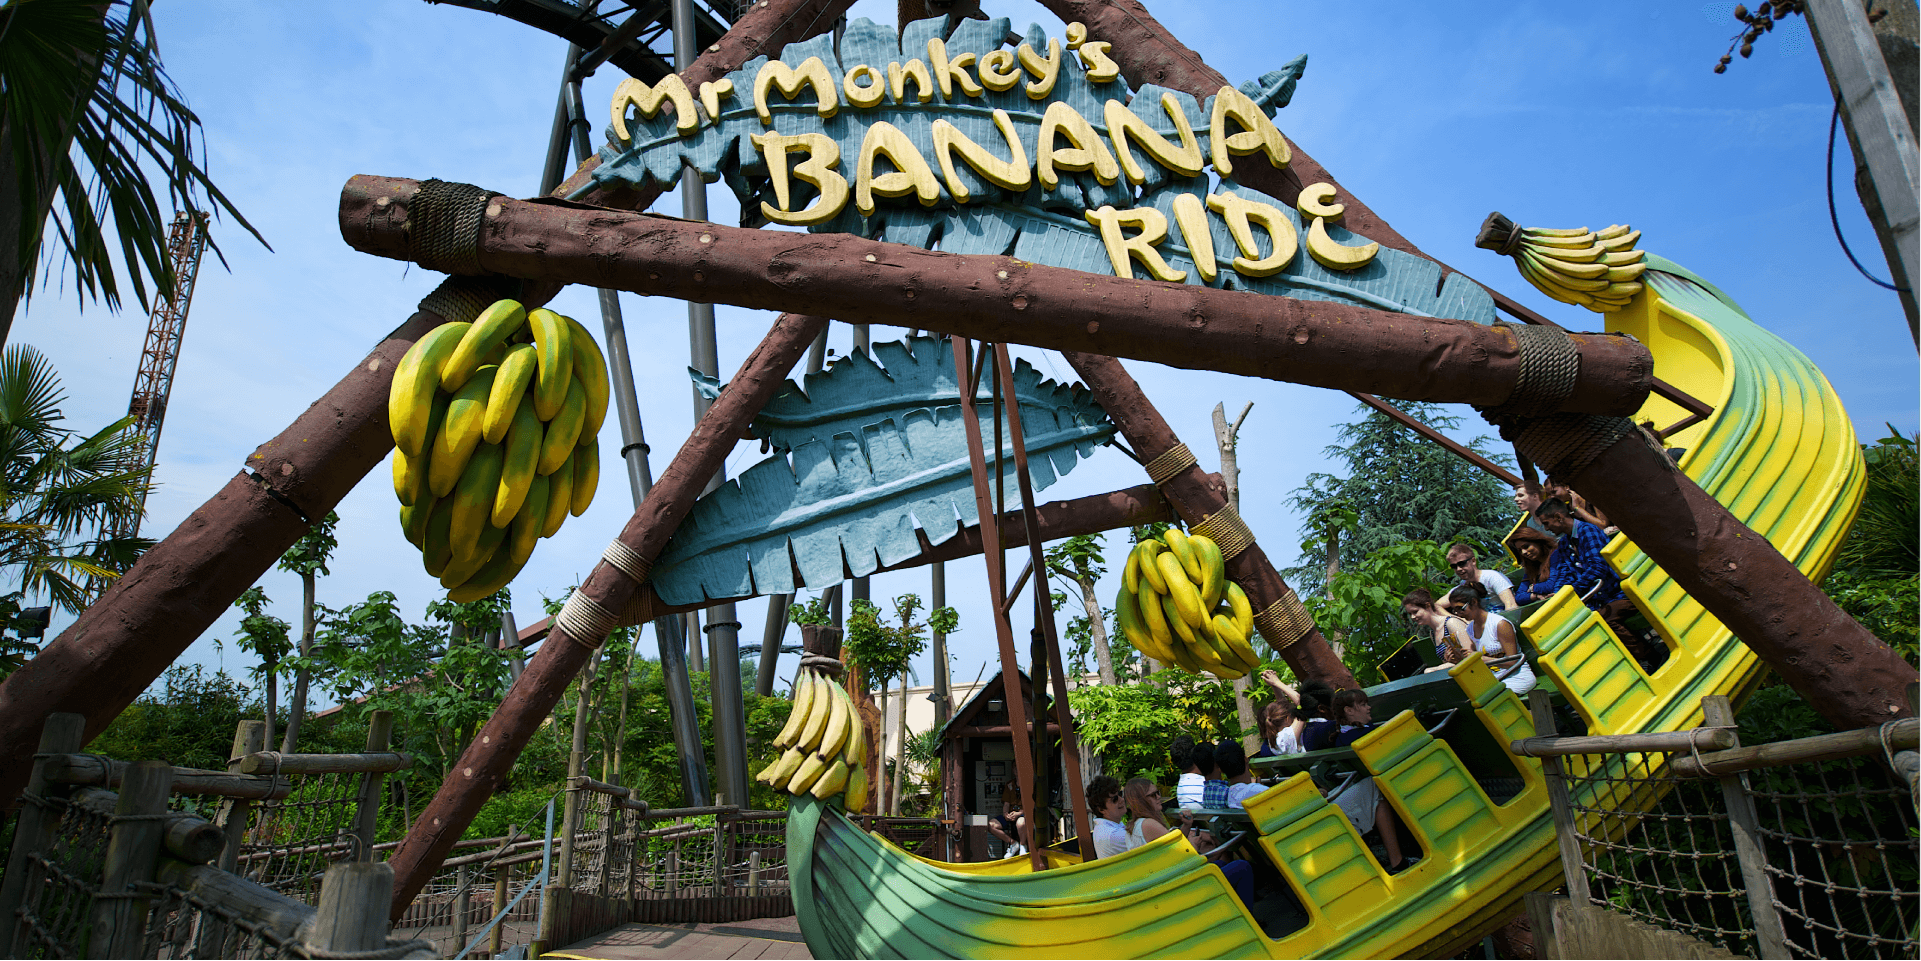 Banana Boat Ride Overview